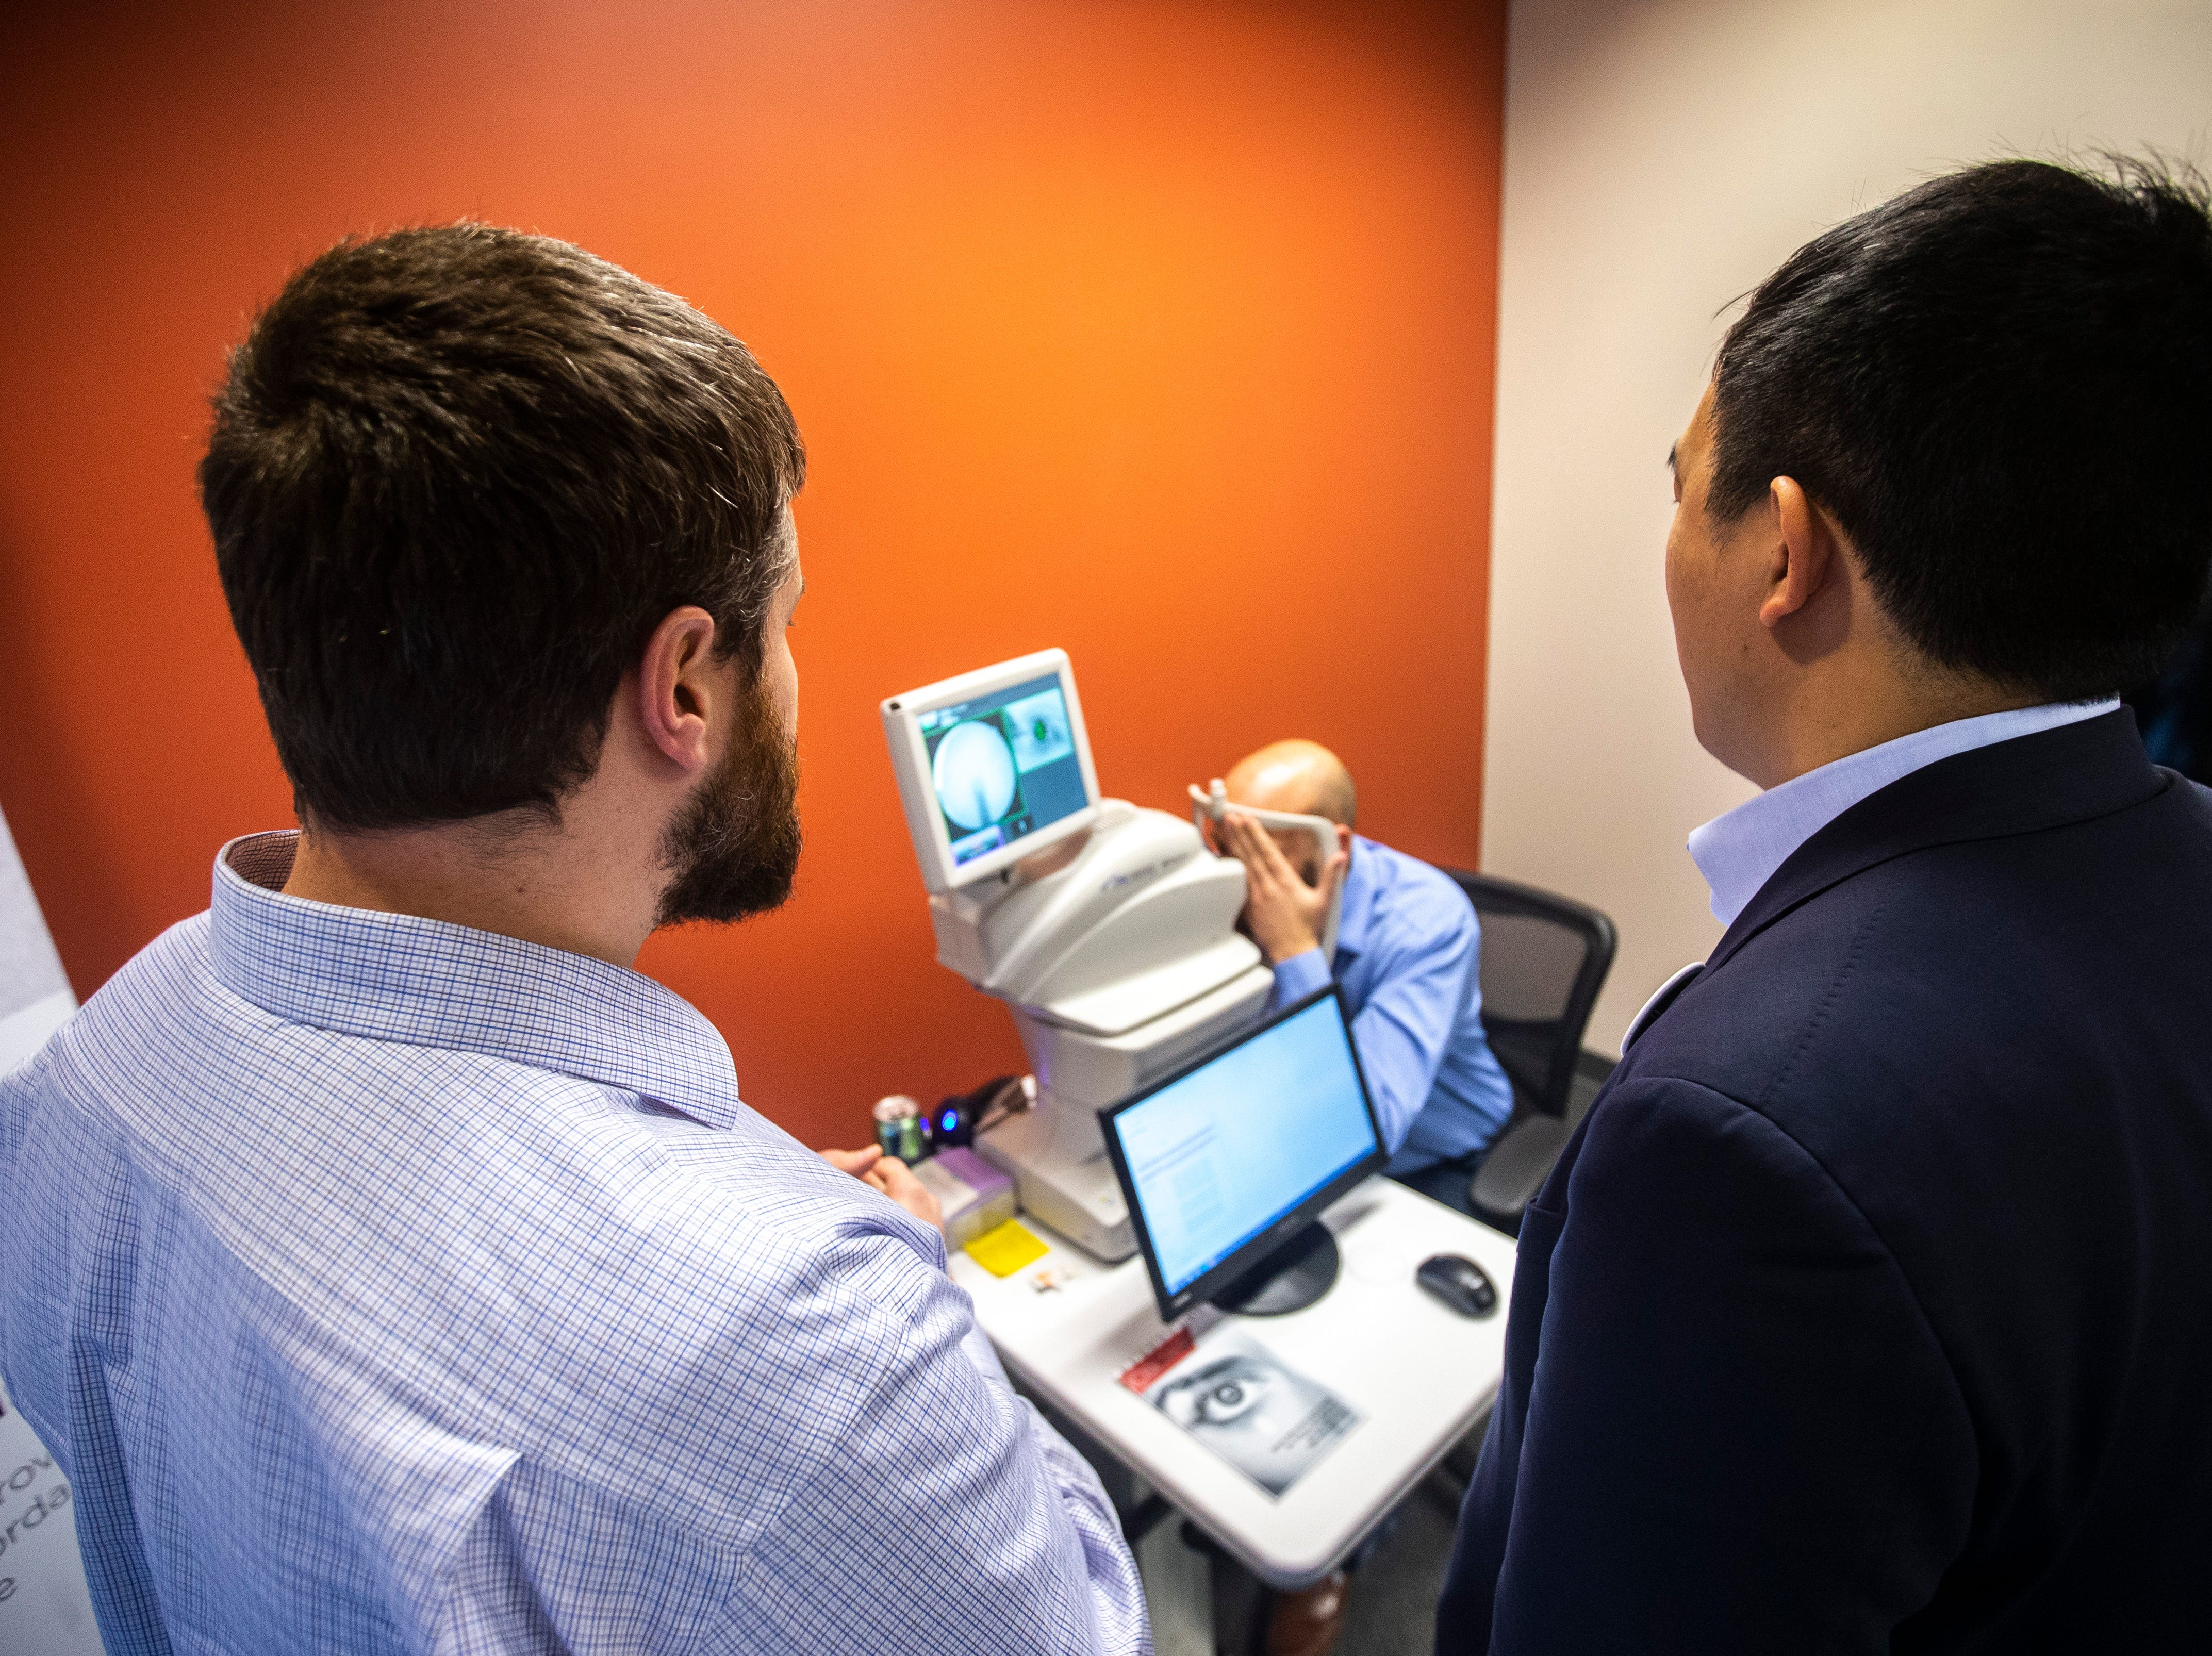 2020 presidential candidate Andrew Yang, right, is shown a demonstration of the IDx-DR, an AI diagnostic system that autonomously analyzes images of the retina for signs of diabetic retinopathy, on Wednesday, March 13, 2019, at IDx Technologies Inc. in Coralville, Iowa.